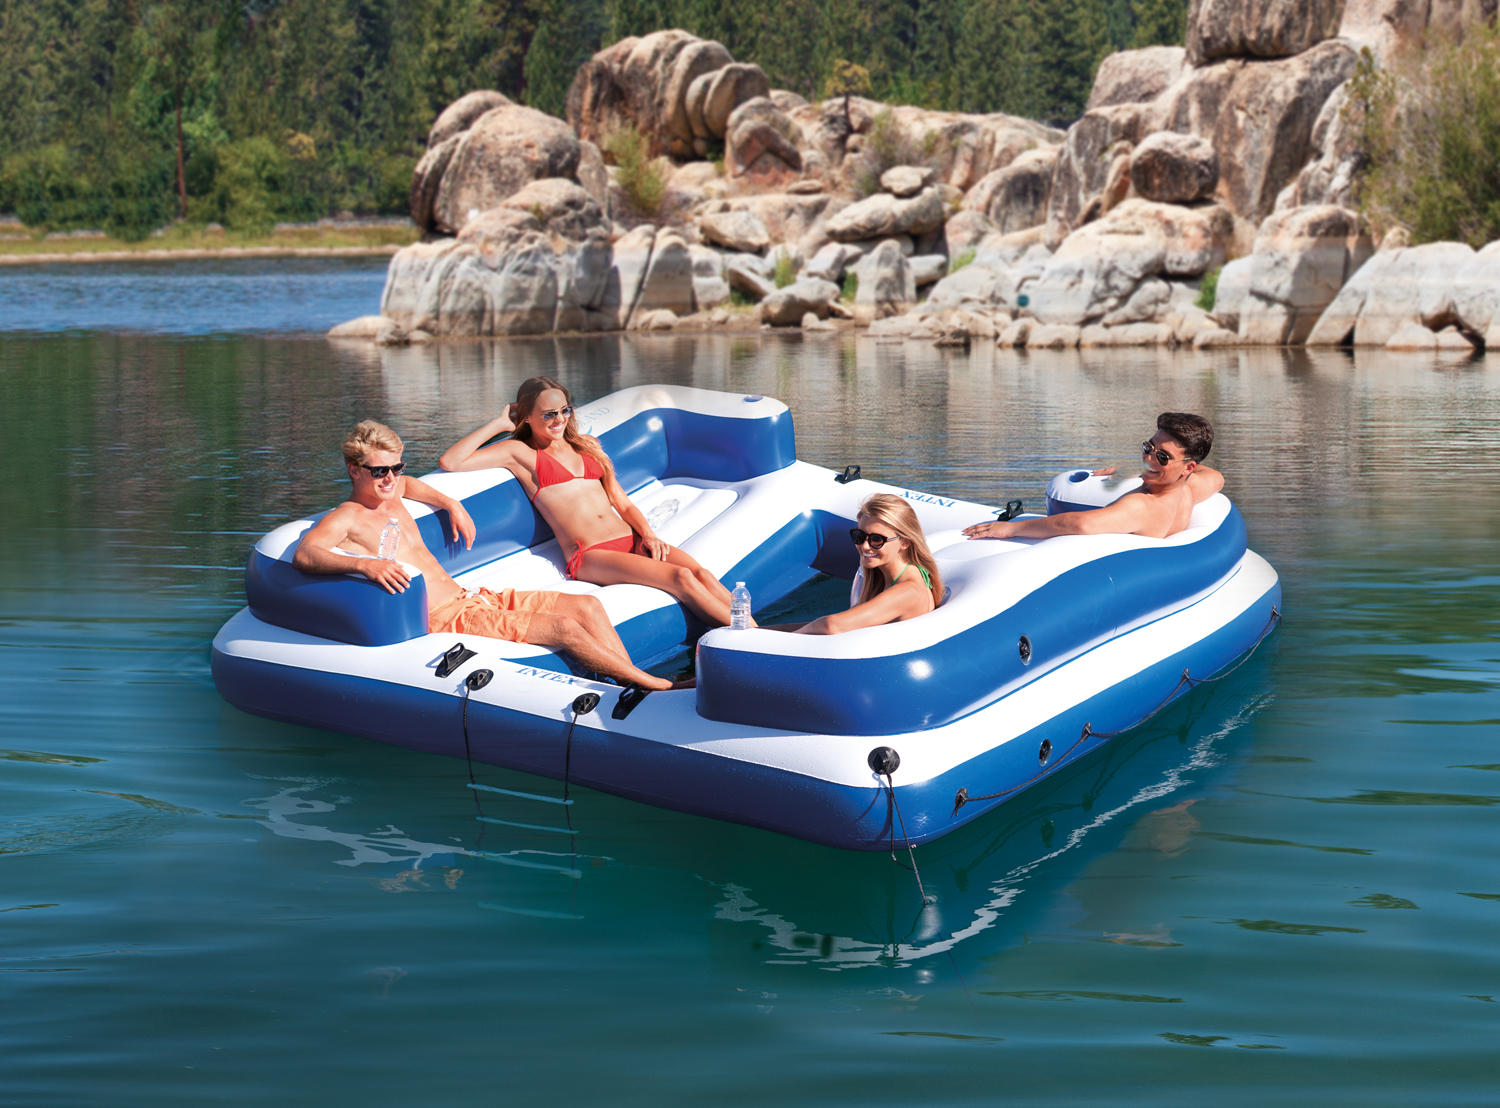 Intex Oasis Island Inflatable Lounge Raft